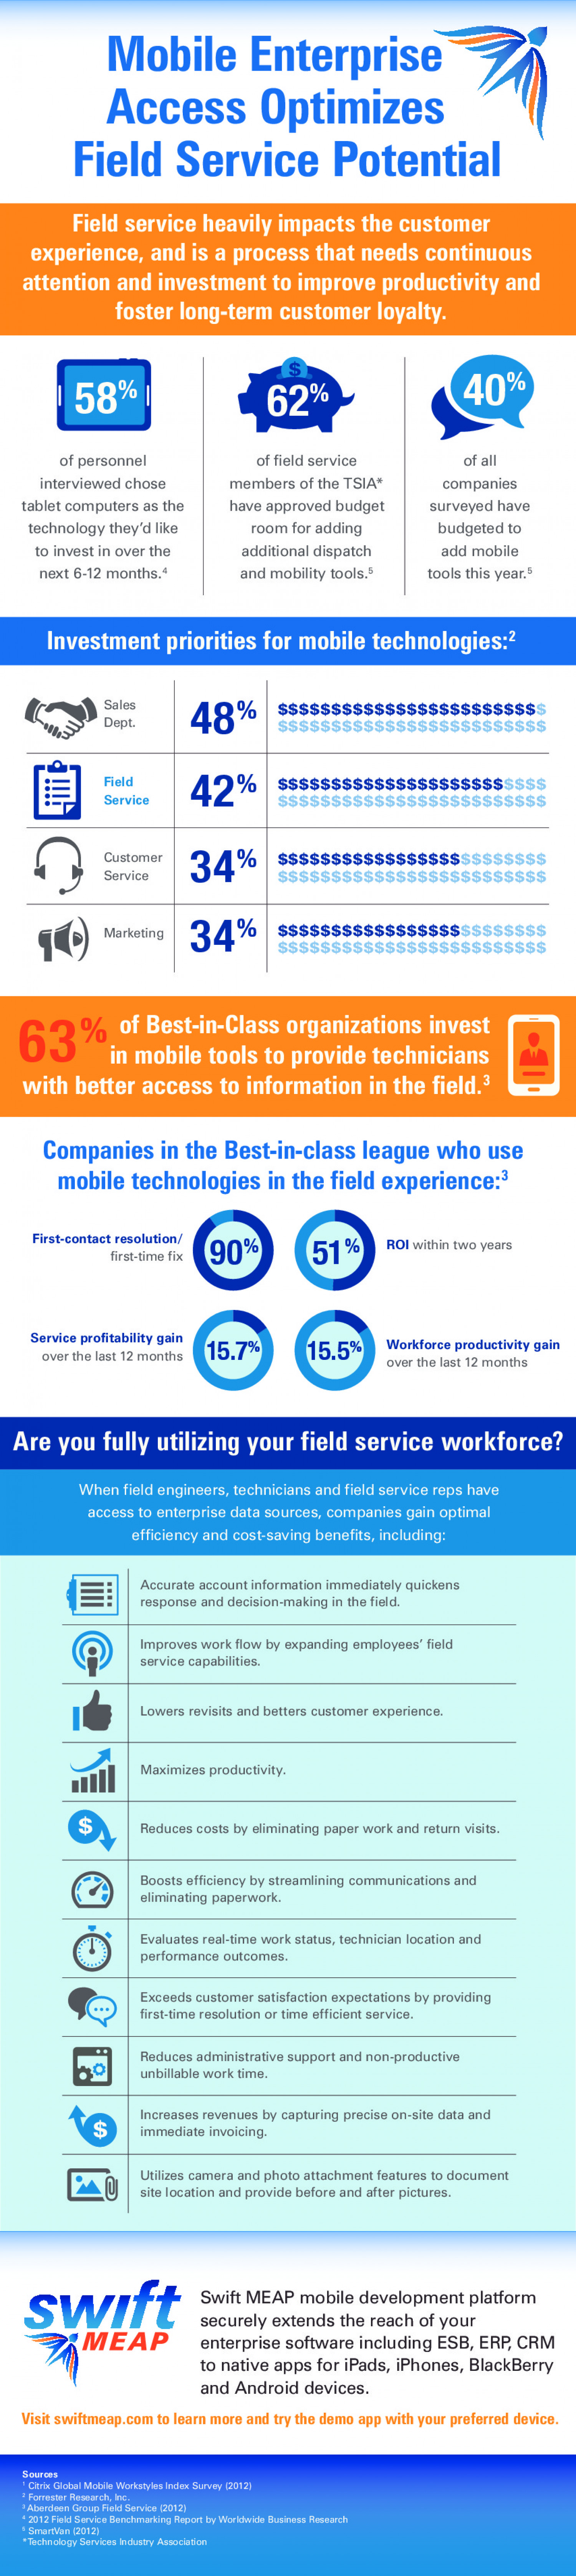 Mobile Enterprise Access Optimizes Field Service Potential Infographic